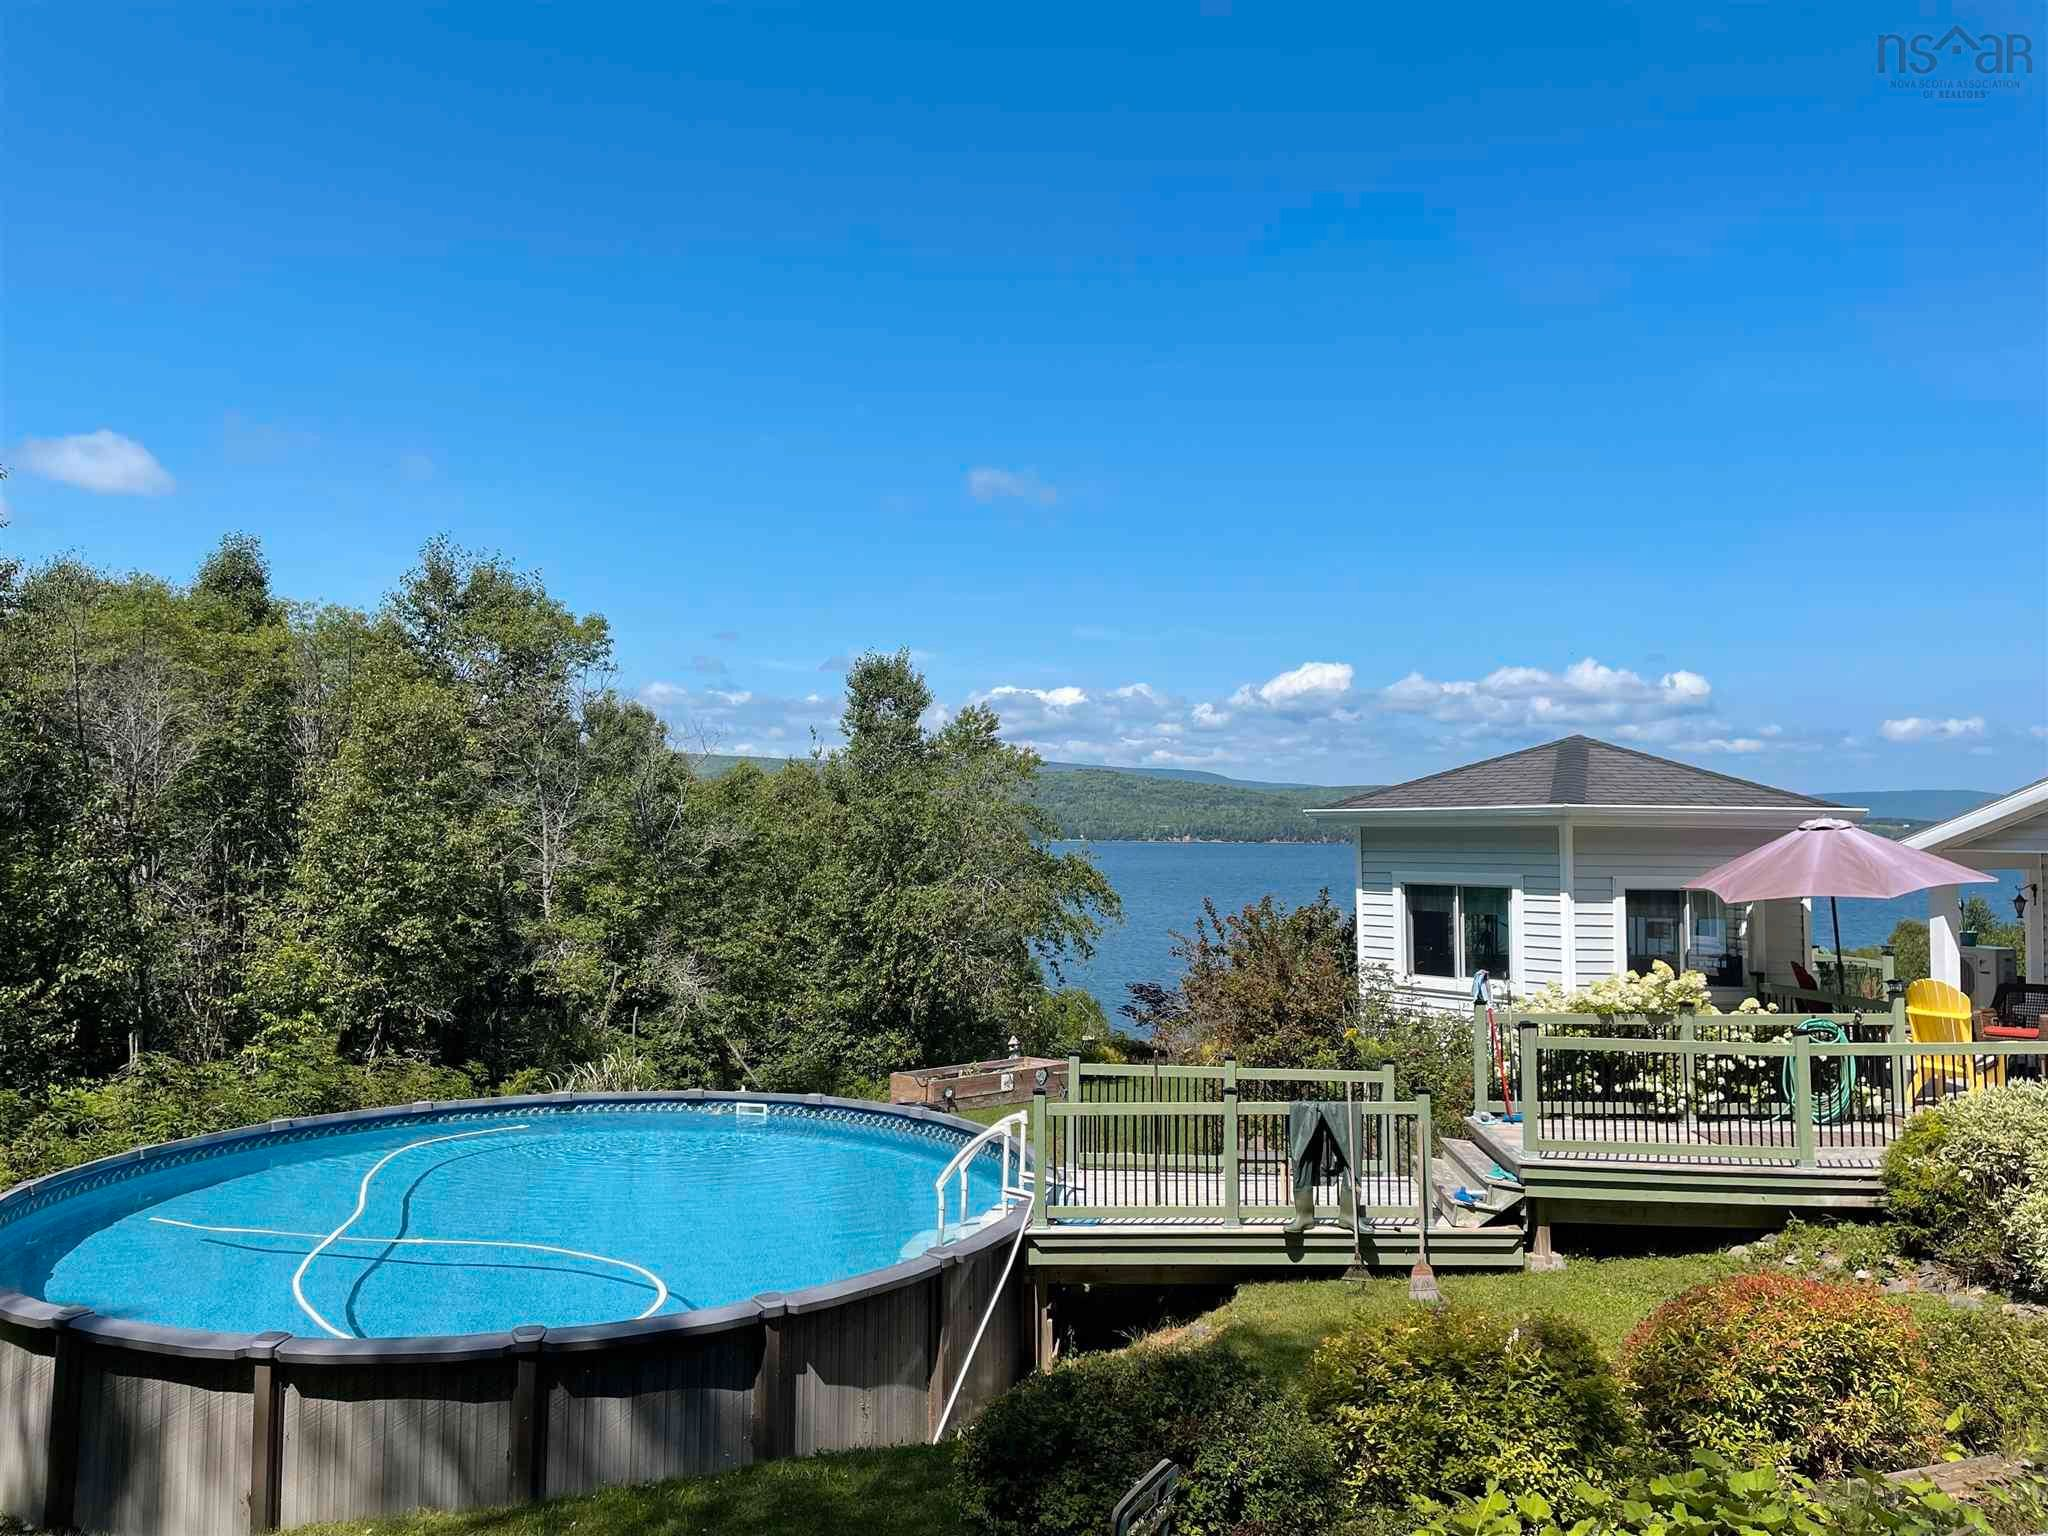 Photo 6: Photos: 3836 Highway 105 in South Haven: 209-Victoria County / Baddeck Residential for sale (Cape Breton)  : MLS®# 202120821